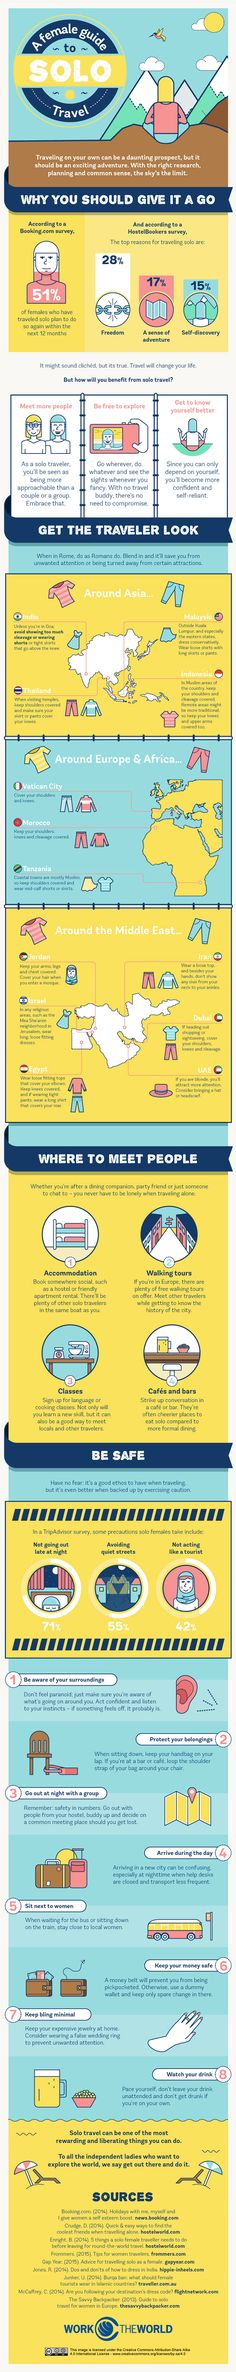 Solo Travel Guide for Women Infographic. Traveling alone or as single lady.